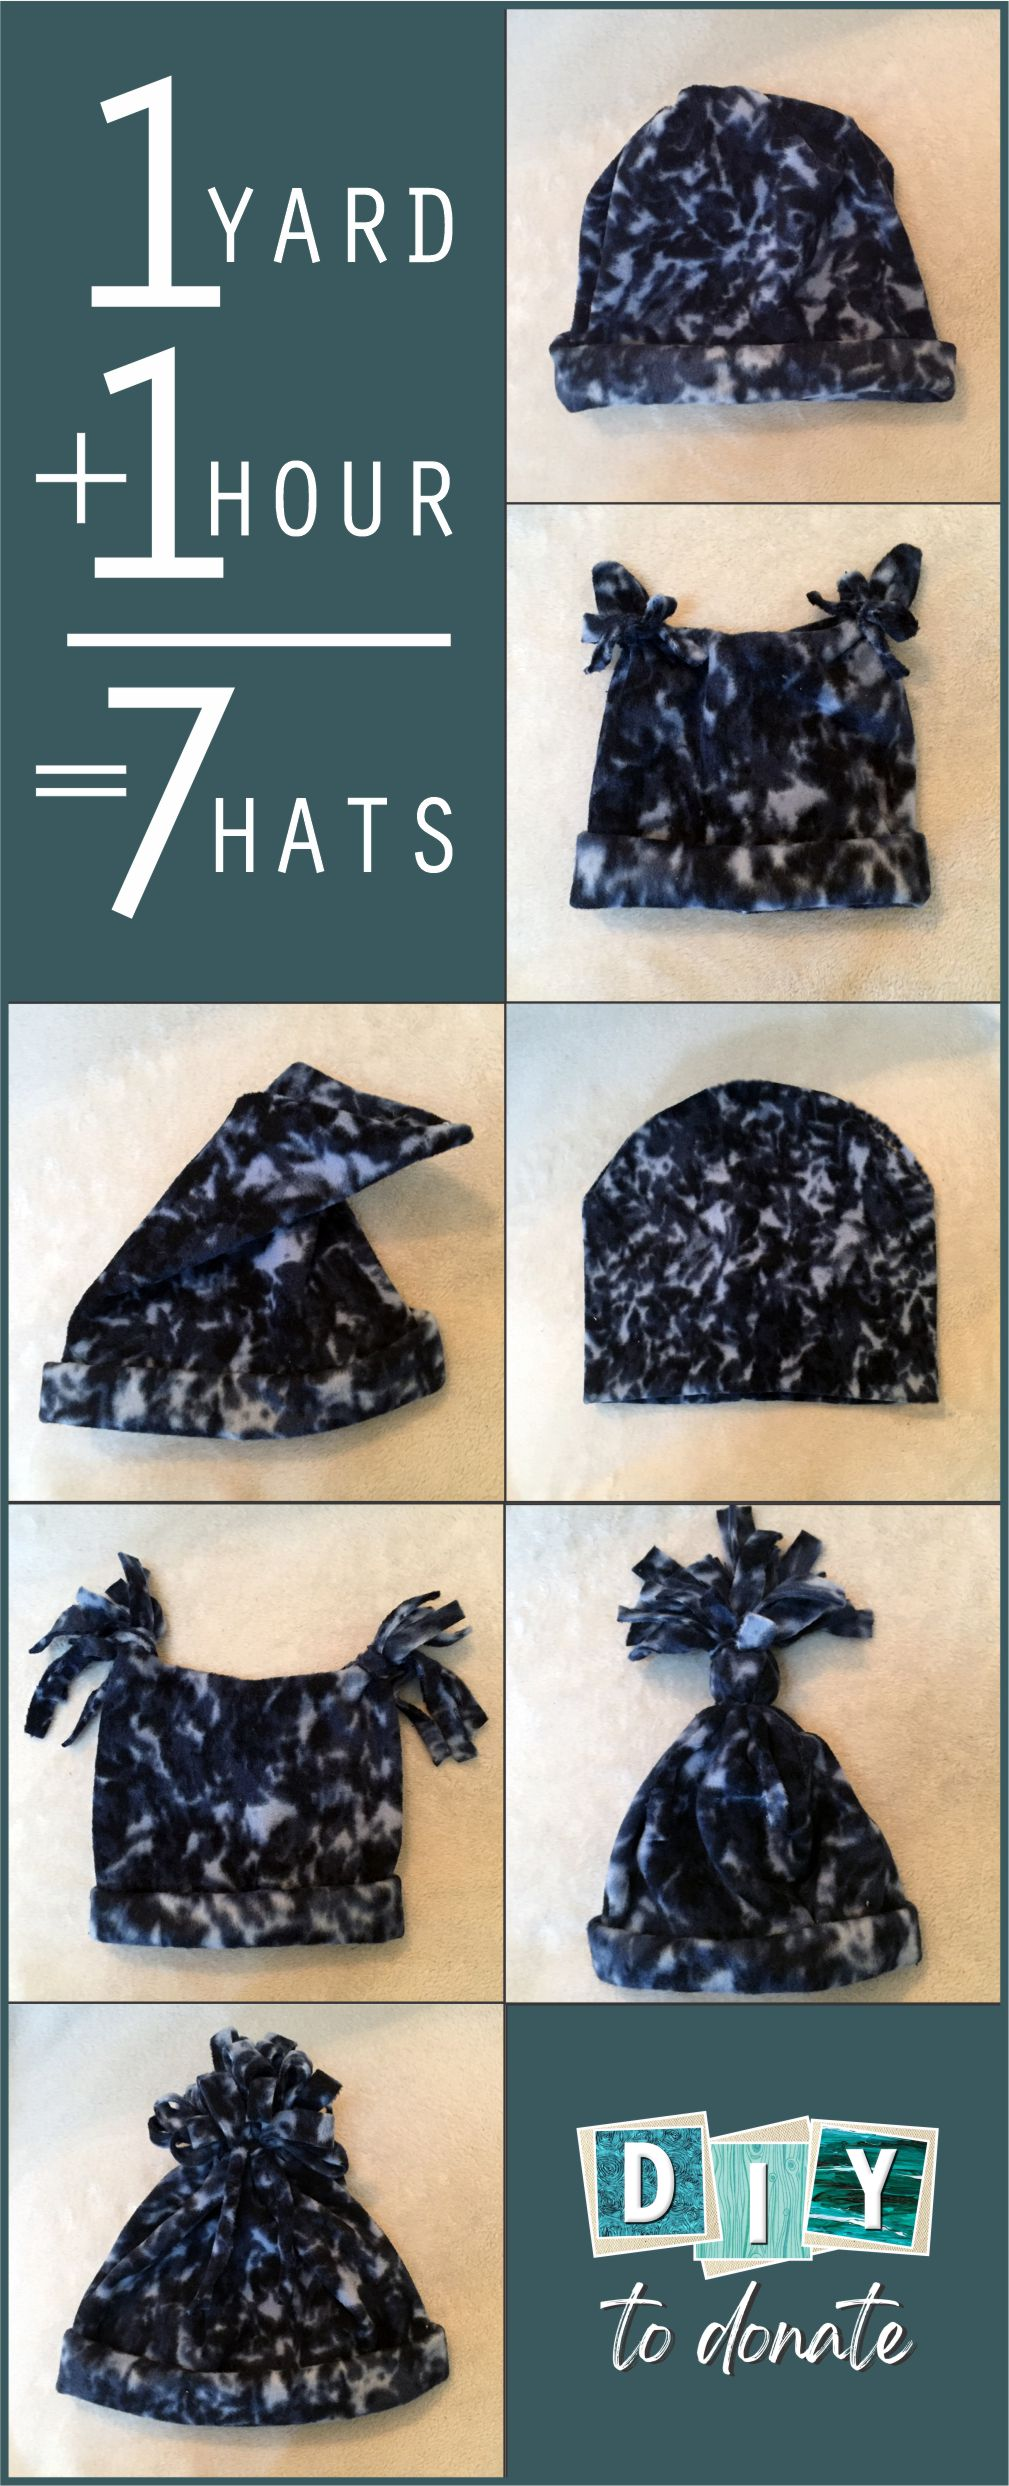 "You really can make seven hats with one yard of 60"" fleece. Download our free printable to seven different hats to donate. #diytodonate #fleecehats #fleece #hats #handmade #freeprintable #donate #diy #giveback #communityservice"